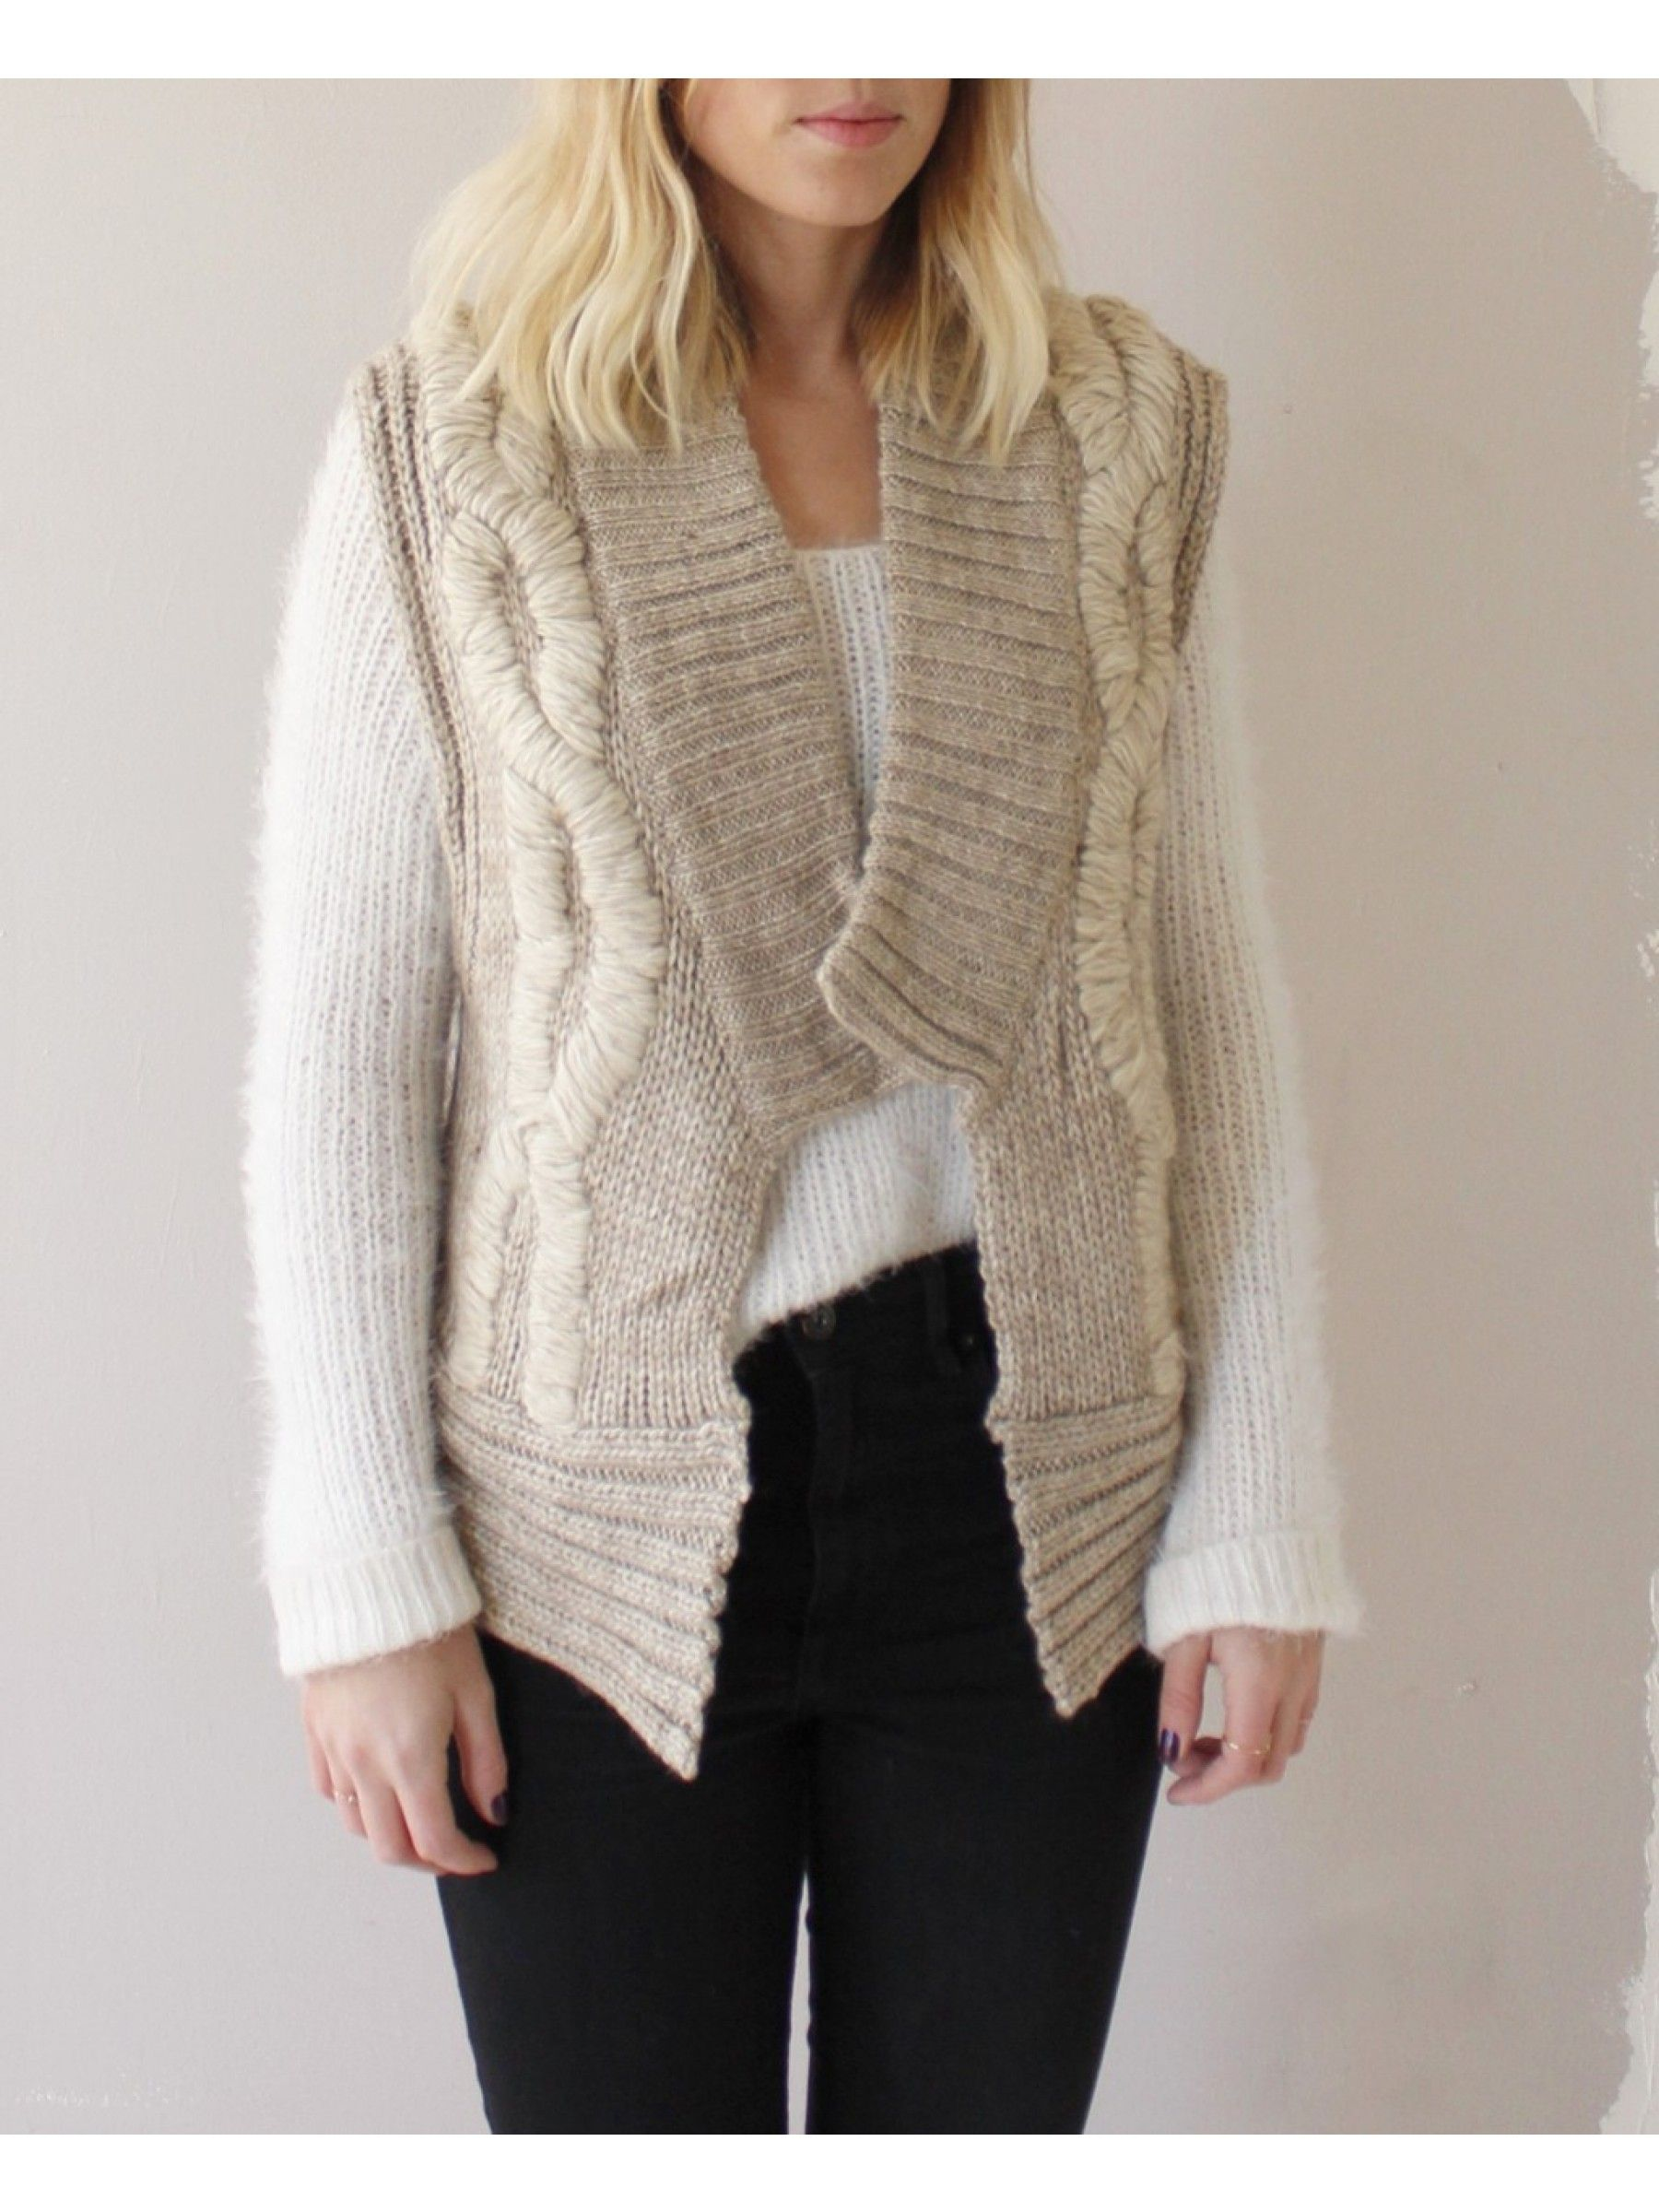 Sand Chunky Knit Sweater Vest | dear society shop | Pinterest